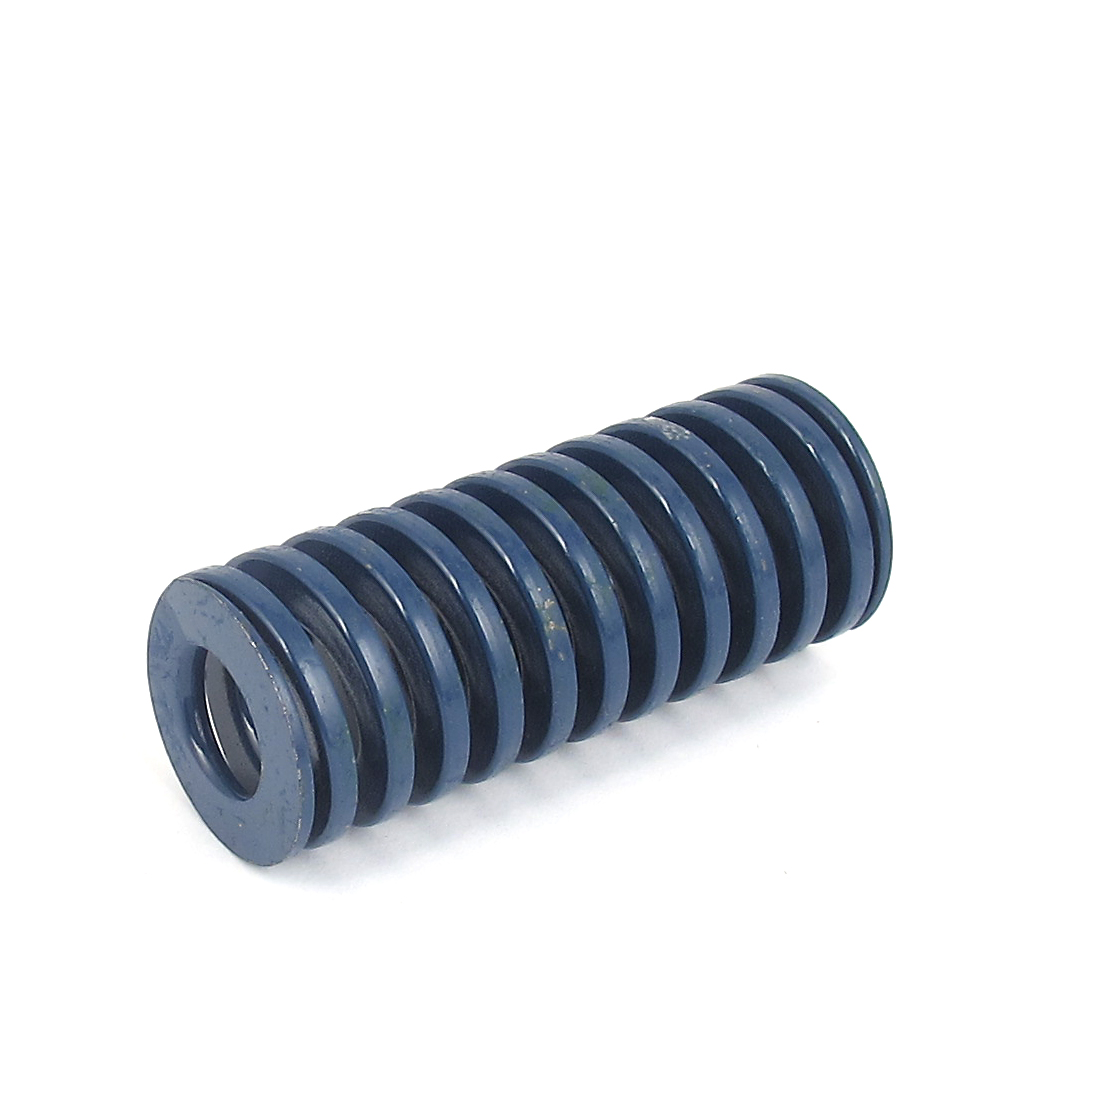 35mmx85mm Chromium Alloy Steel Light Load Die Spring Blue